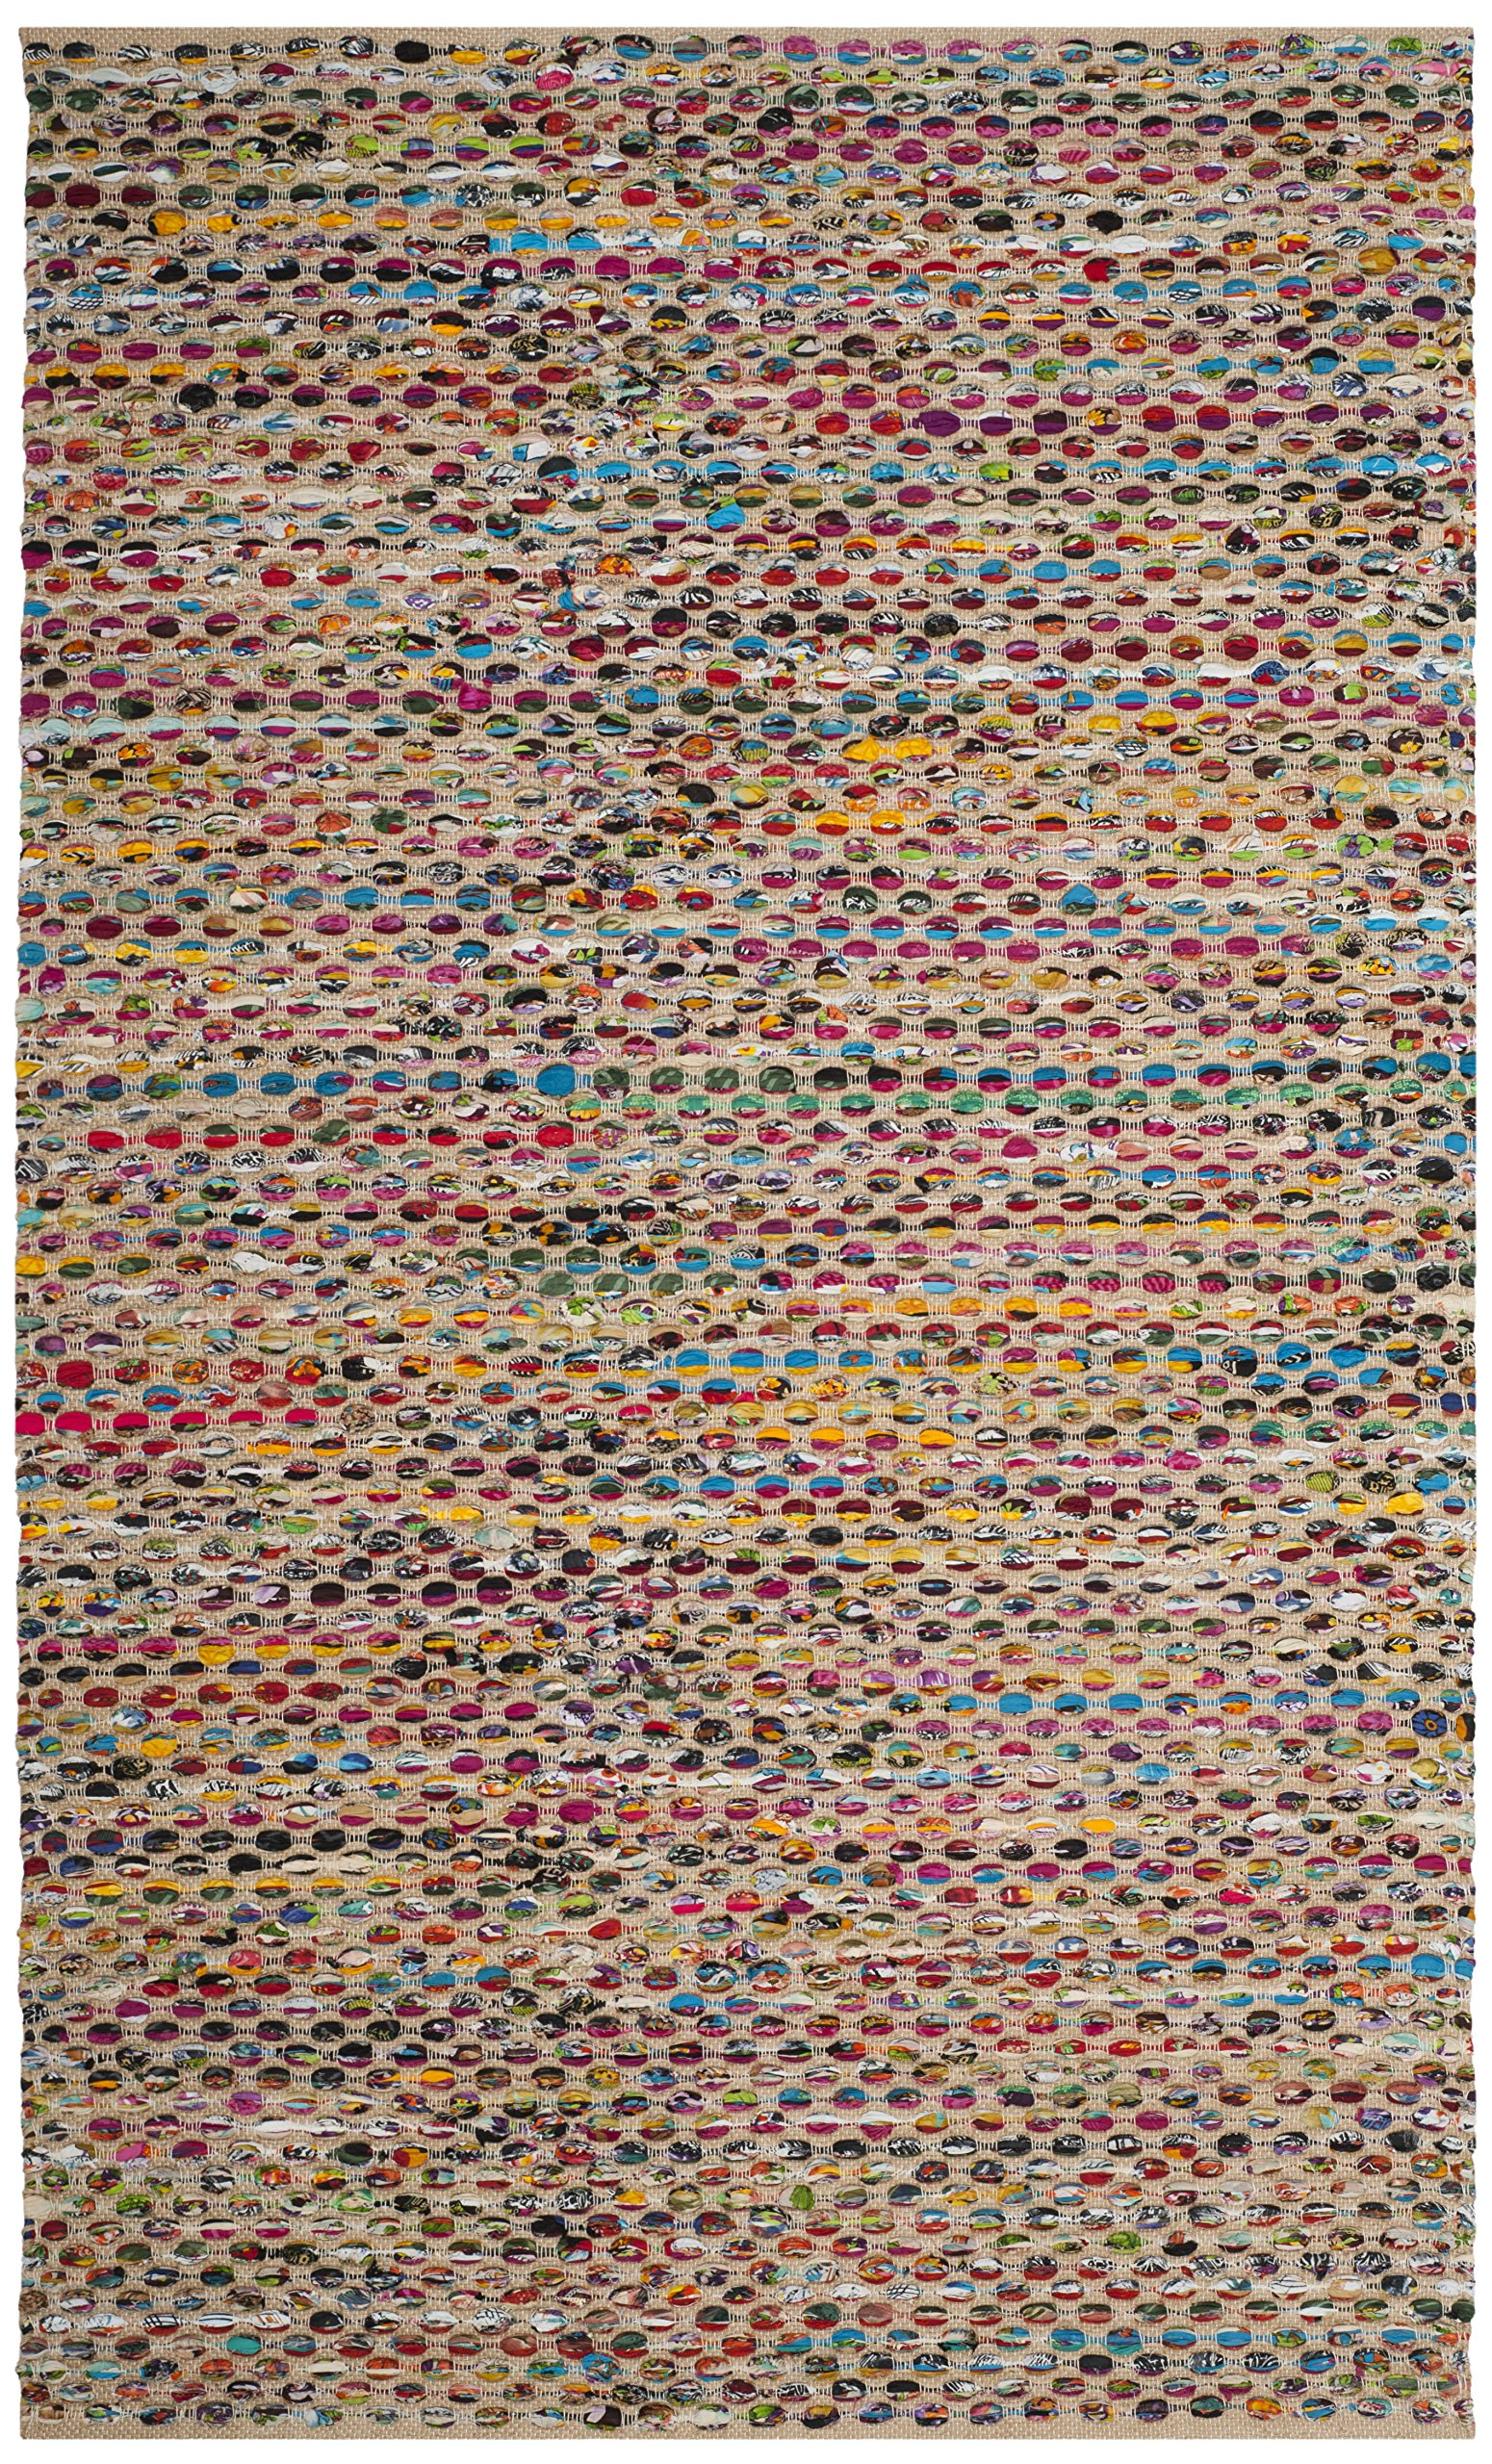 Safavieh Cape Cod Collection CAP302A Handmade Natural and Multicolored Jute Area Rug (5' x 8') by Safavieh